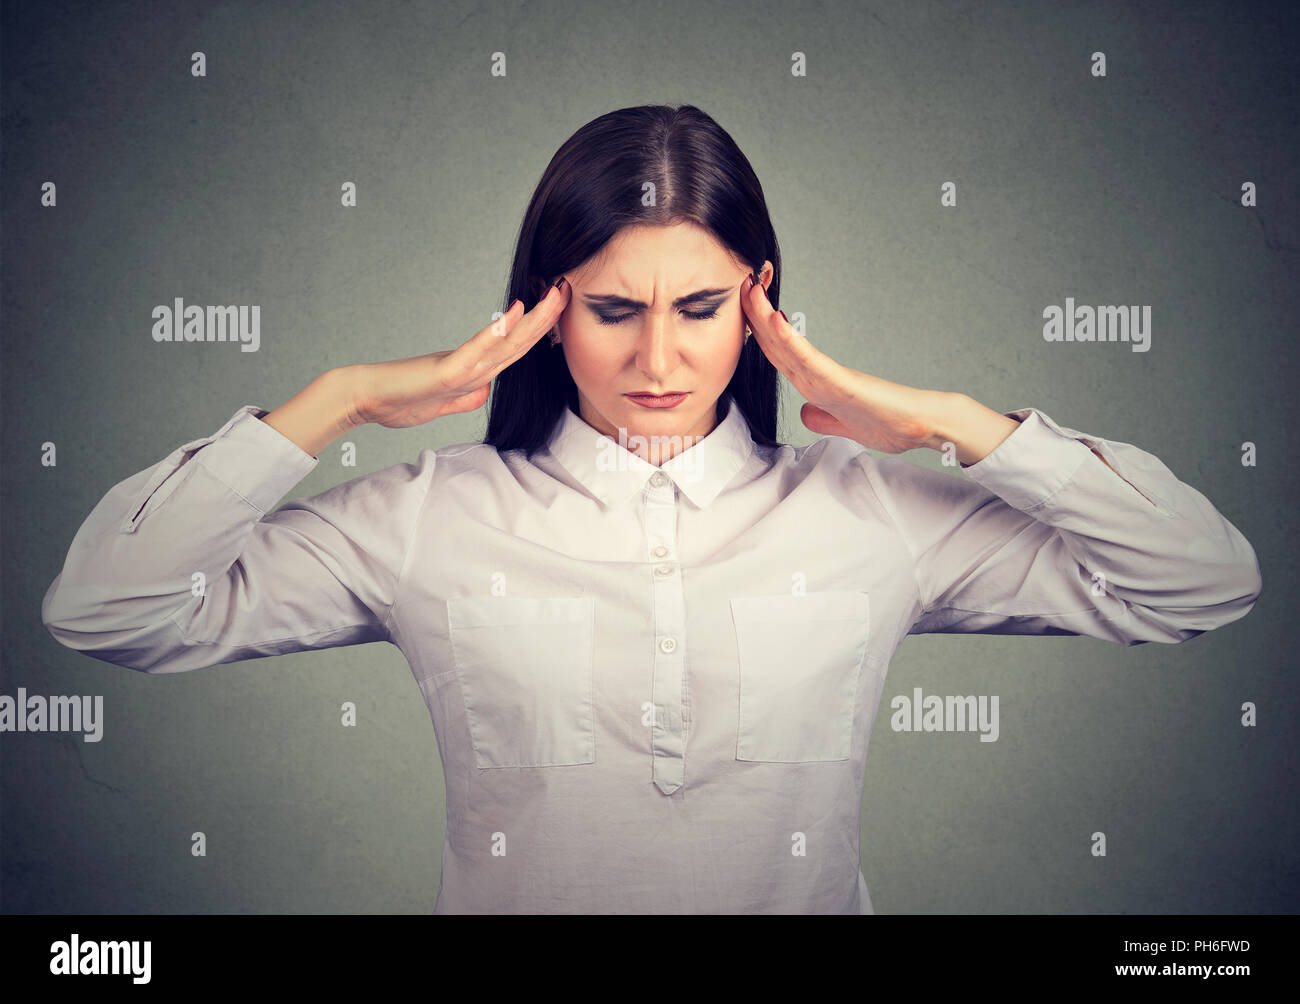 Woman holding fingers on temples trying to concentrate on decision making looking stressed - Stock Image